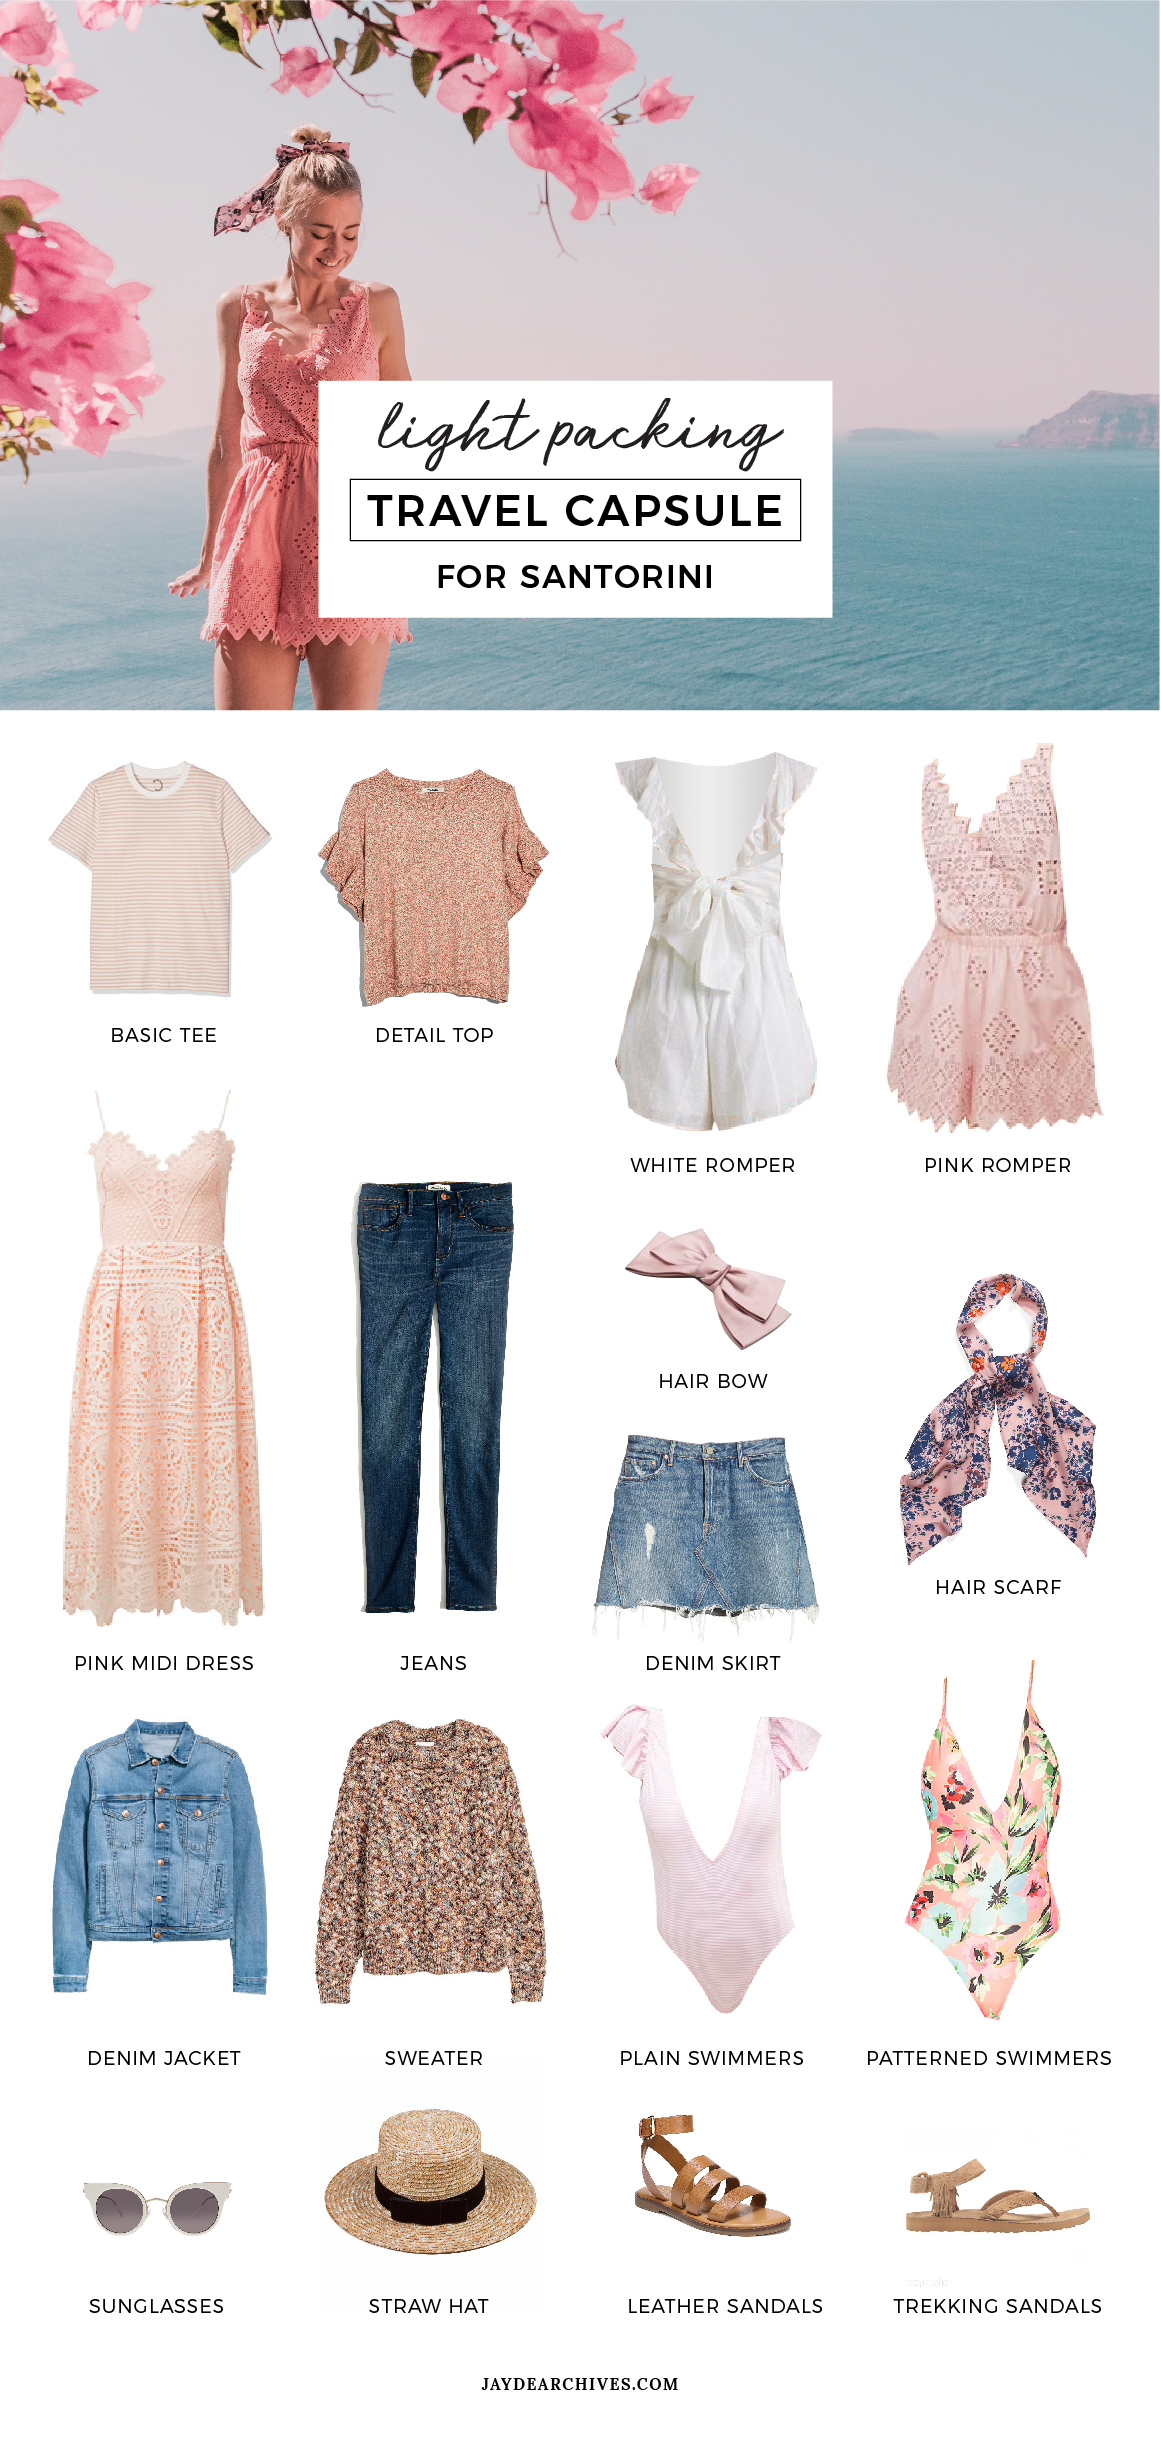 Travel Capsule Wardrobe for Santorini